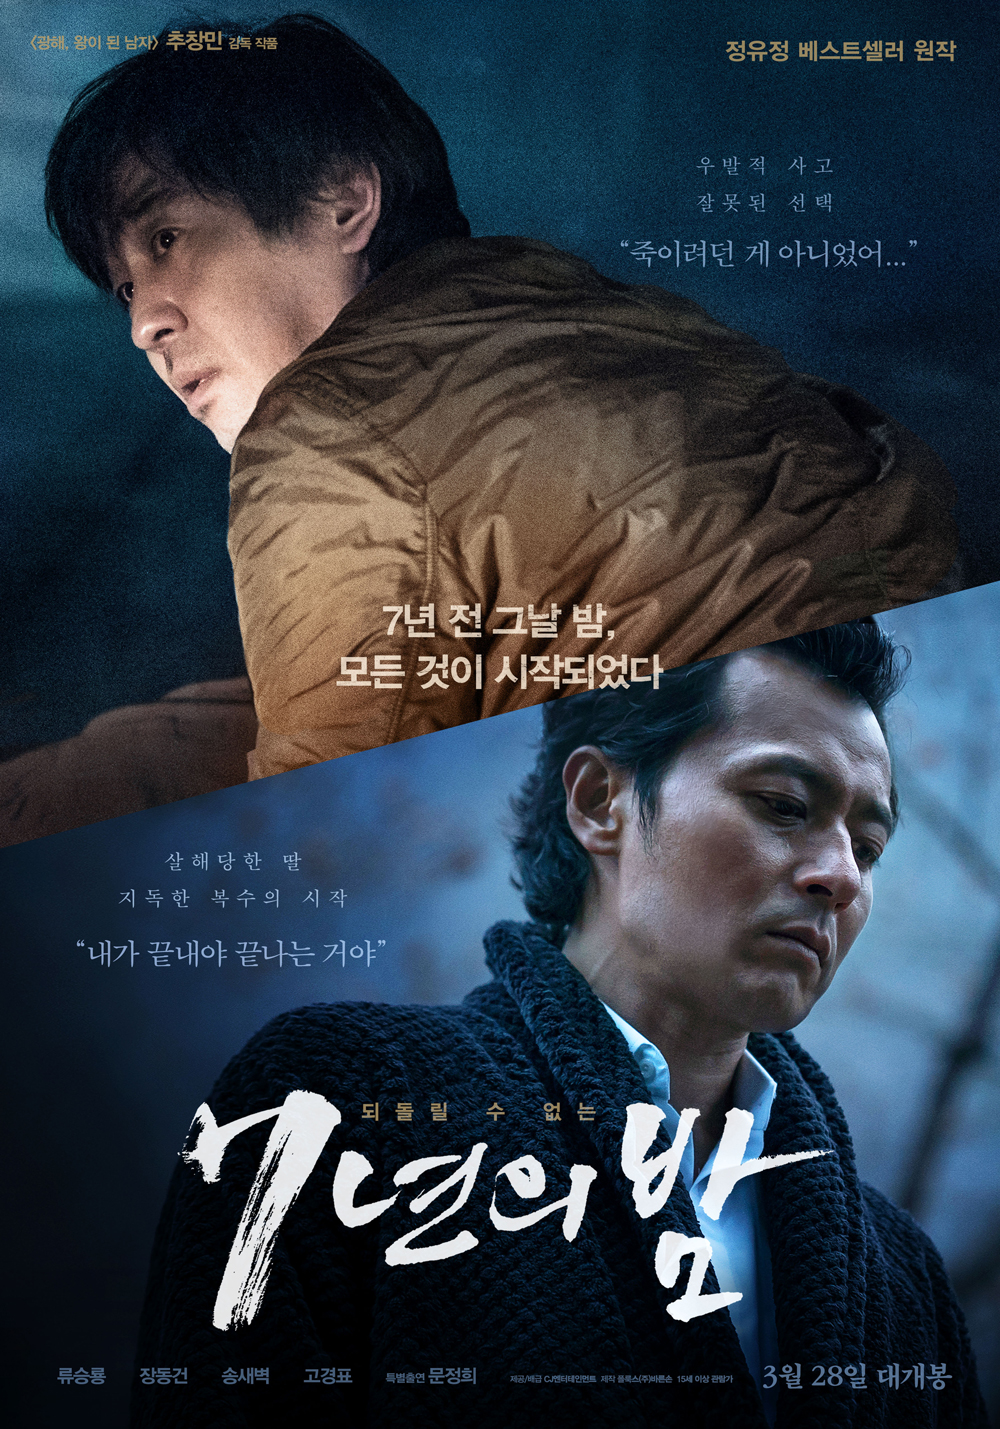 7년의 밤 (Seven Years of Night, 2018)